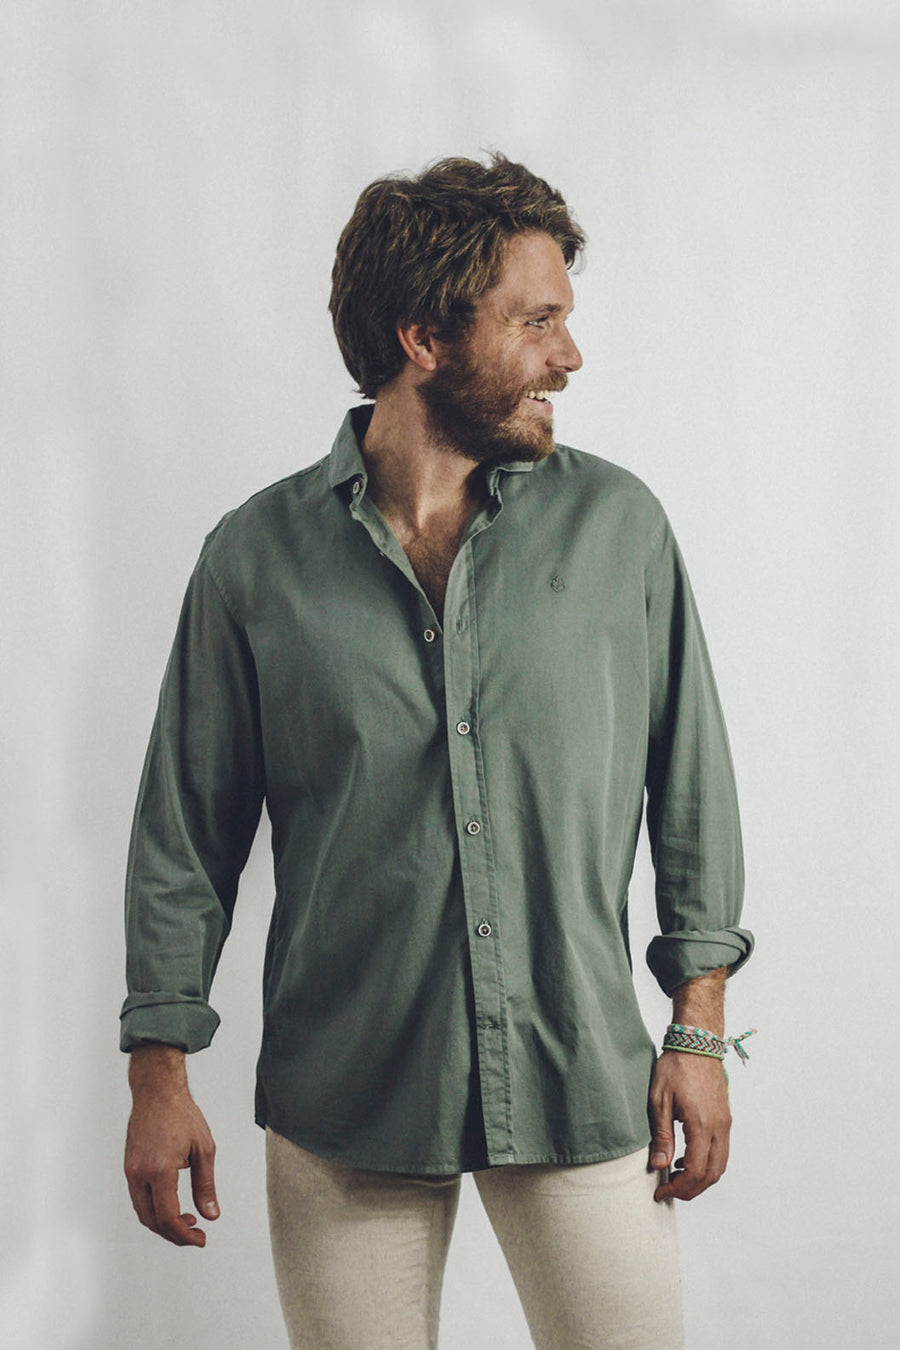 Khaki Green Cotton Shirt